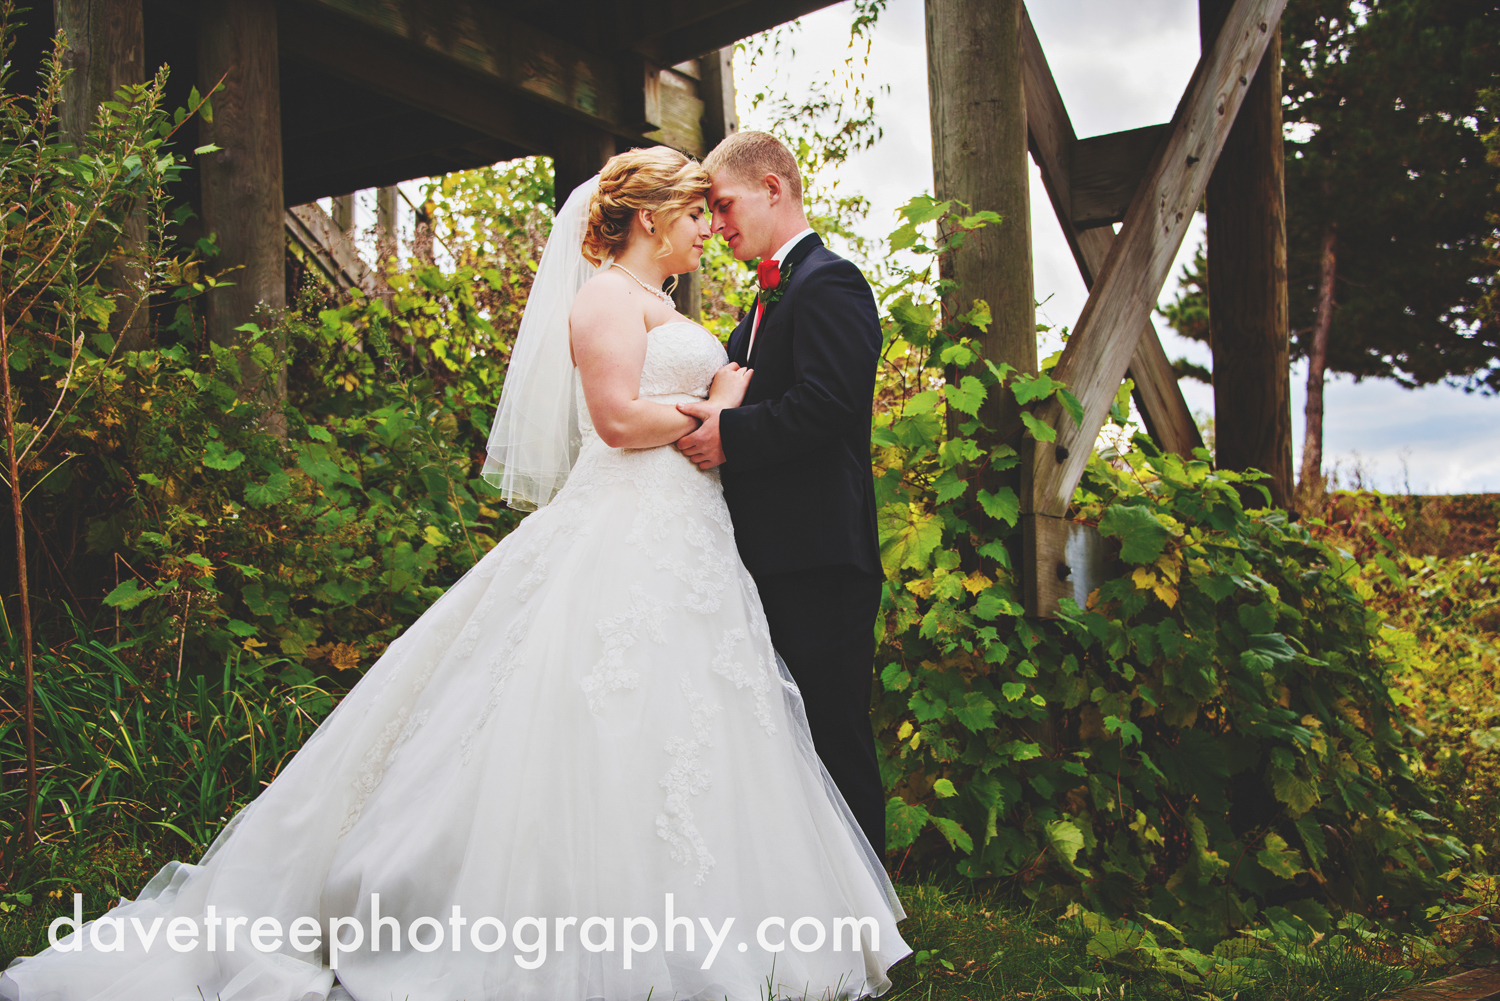 holland_wedding_photographer_22.jpg